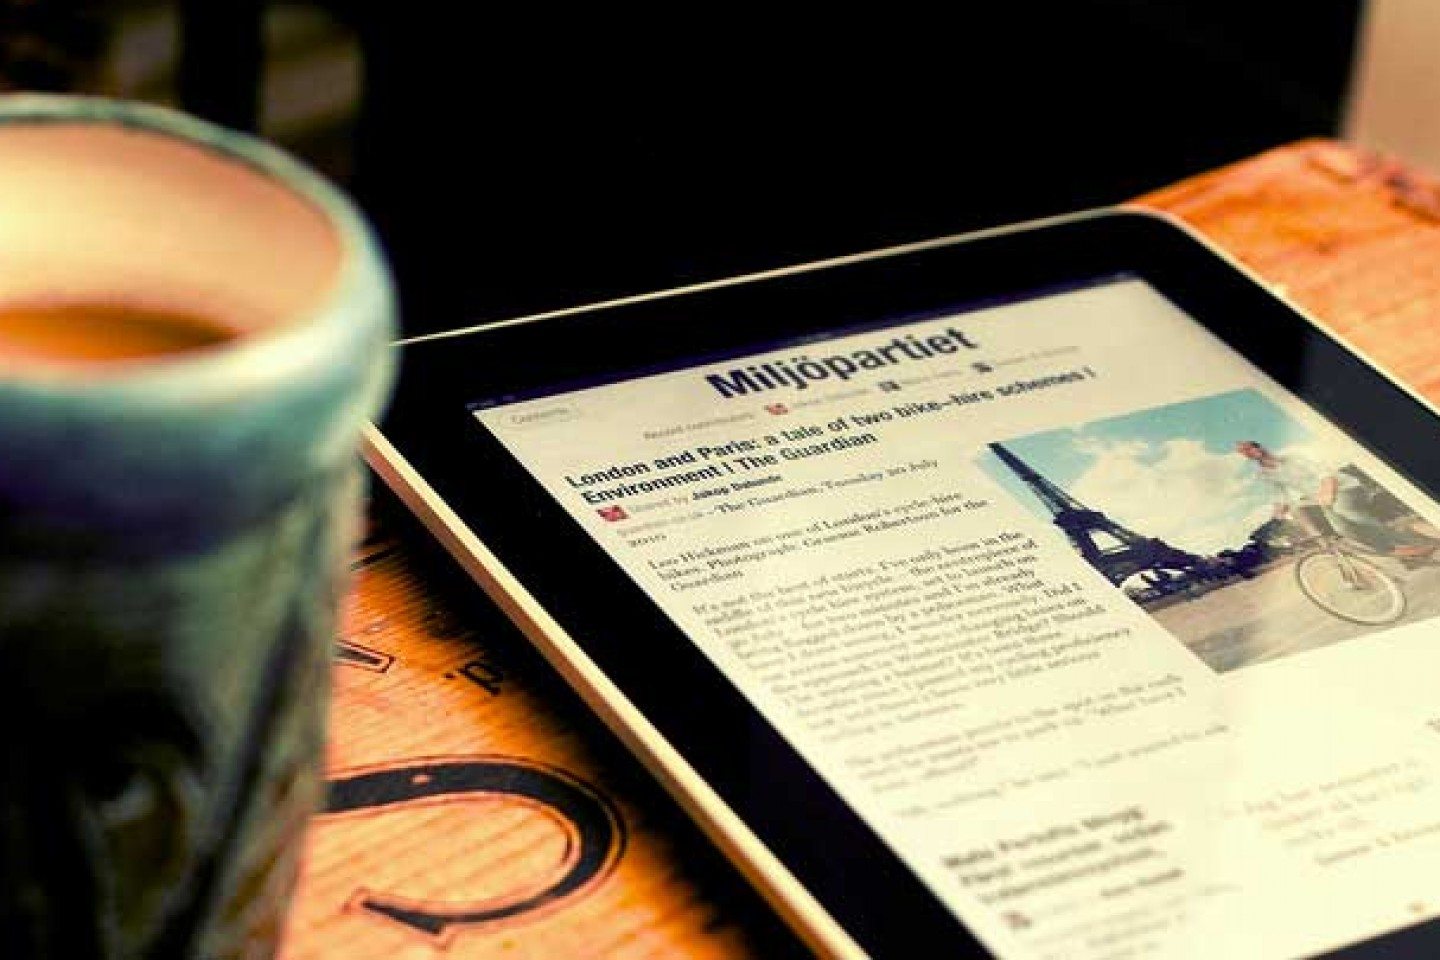 cropped-ipad-coffee-cup-news-milijopartiet-tablet.jpg